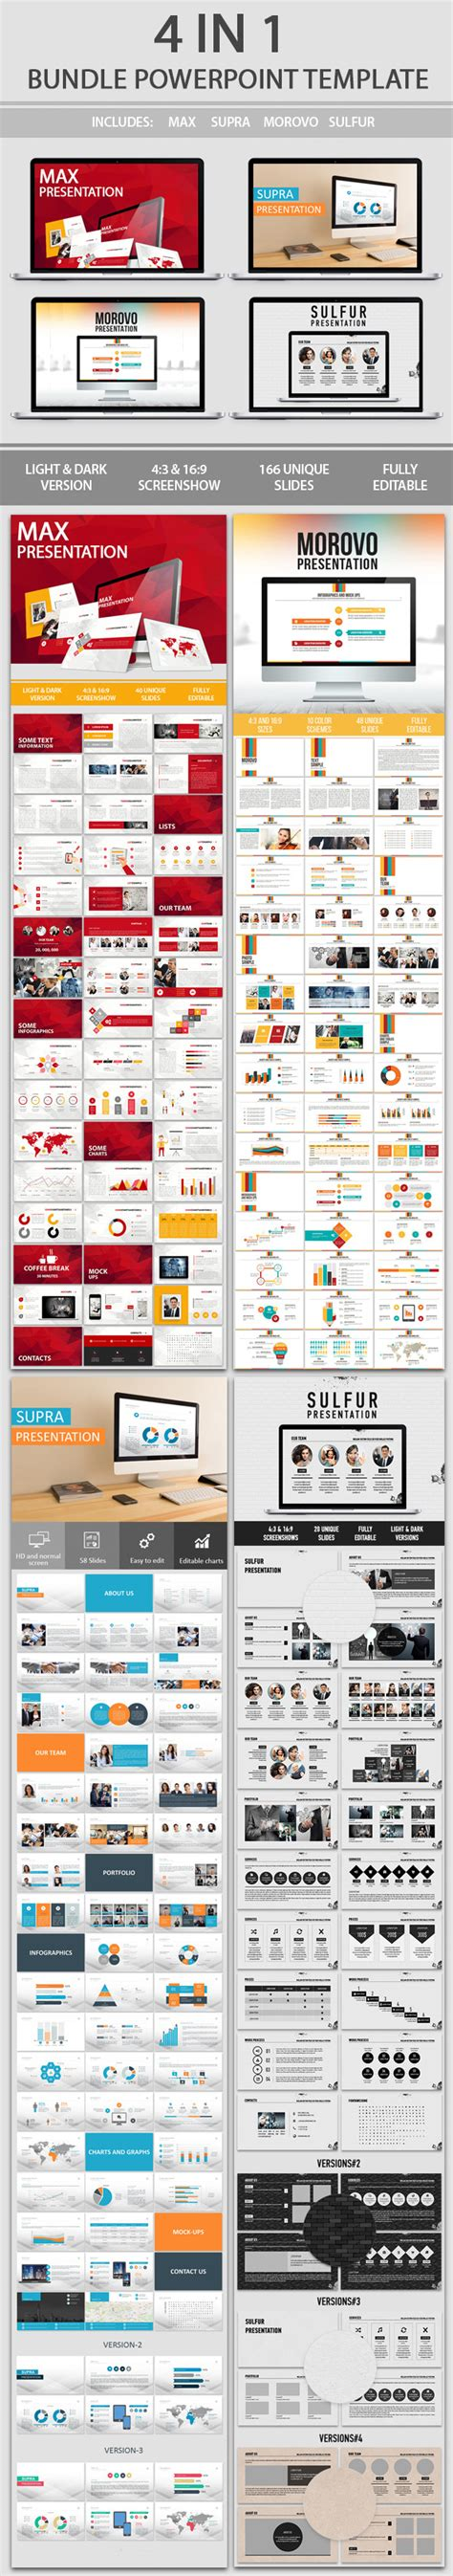 Template Powerpoint 4 In 1 Business Powerpoint Bundle discover 4 in 1 bundle powerpoint template infographicnow your number one source for